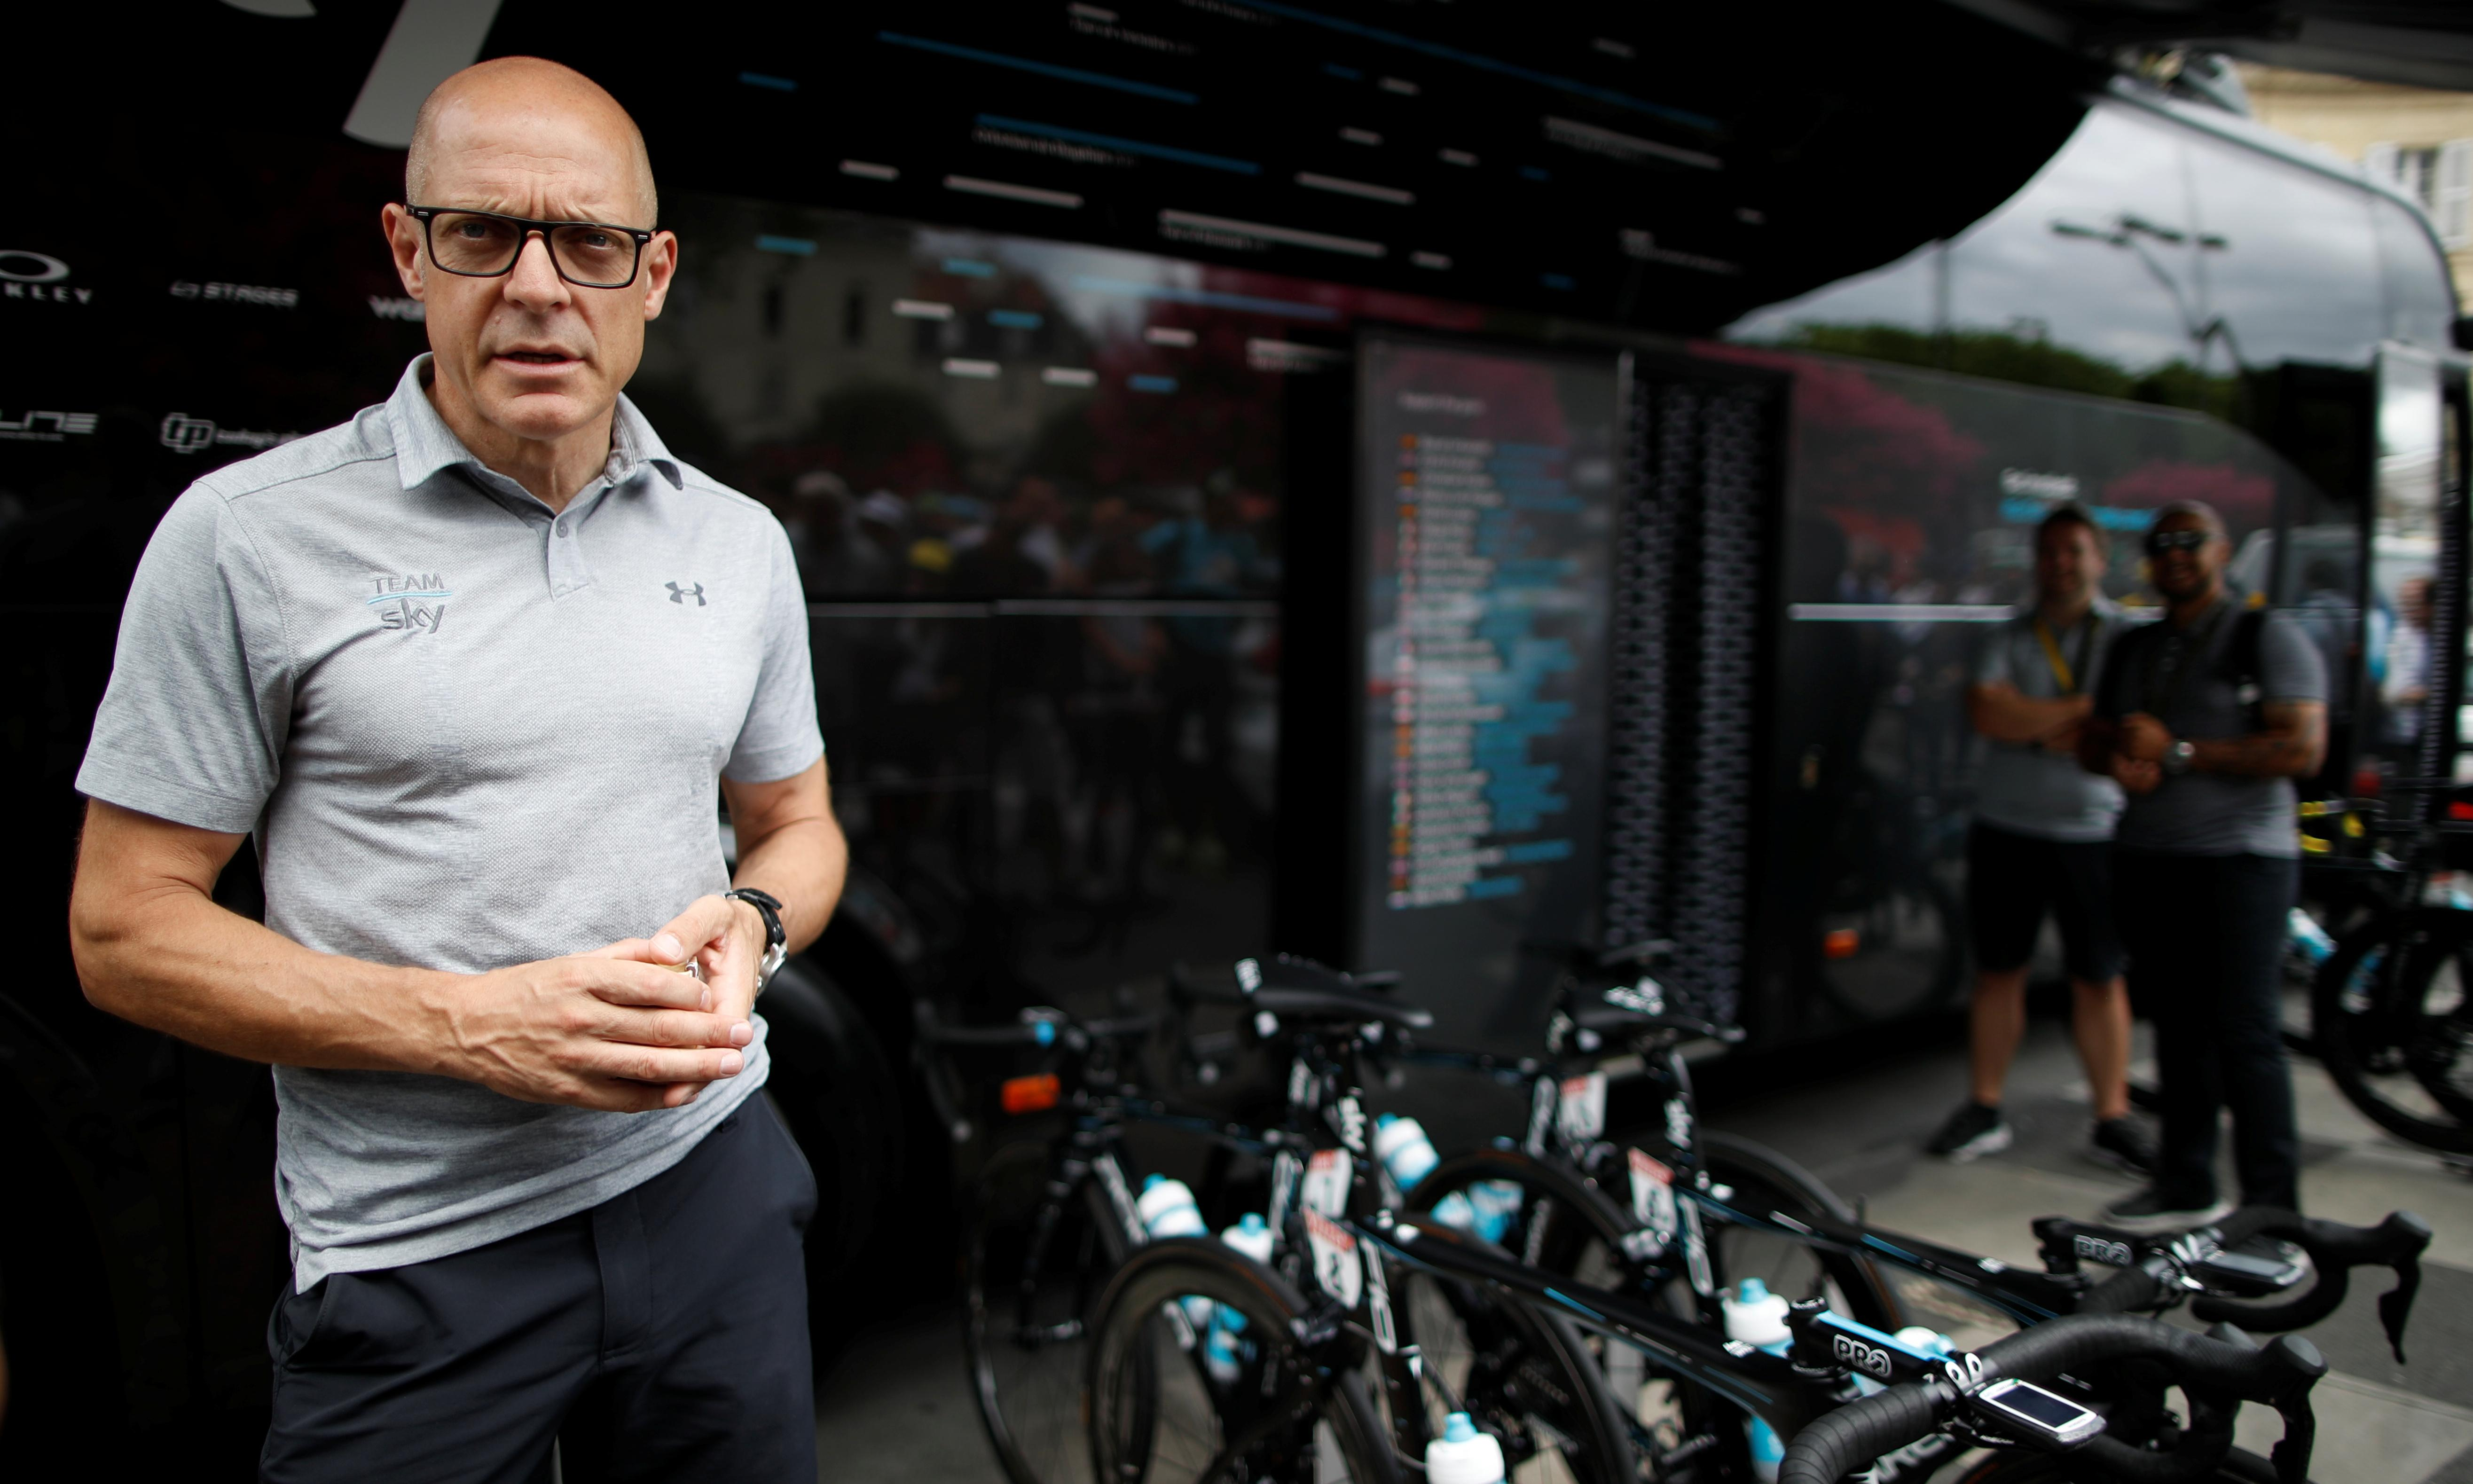 Team Sky's Ineos deal will prompt mixed emotions in the peloton